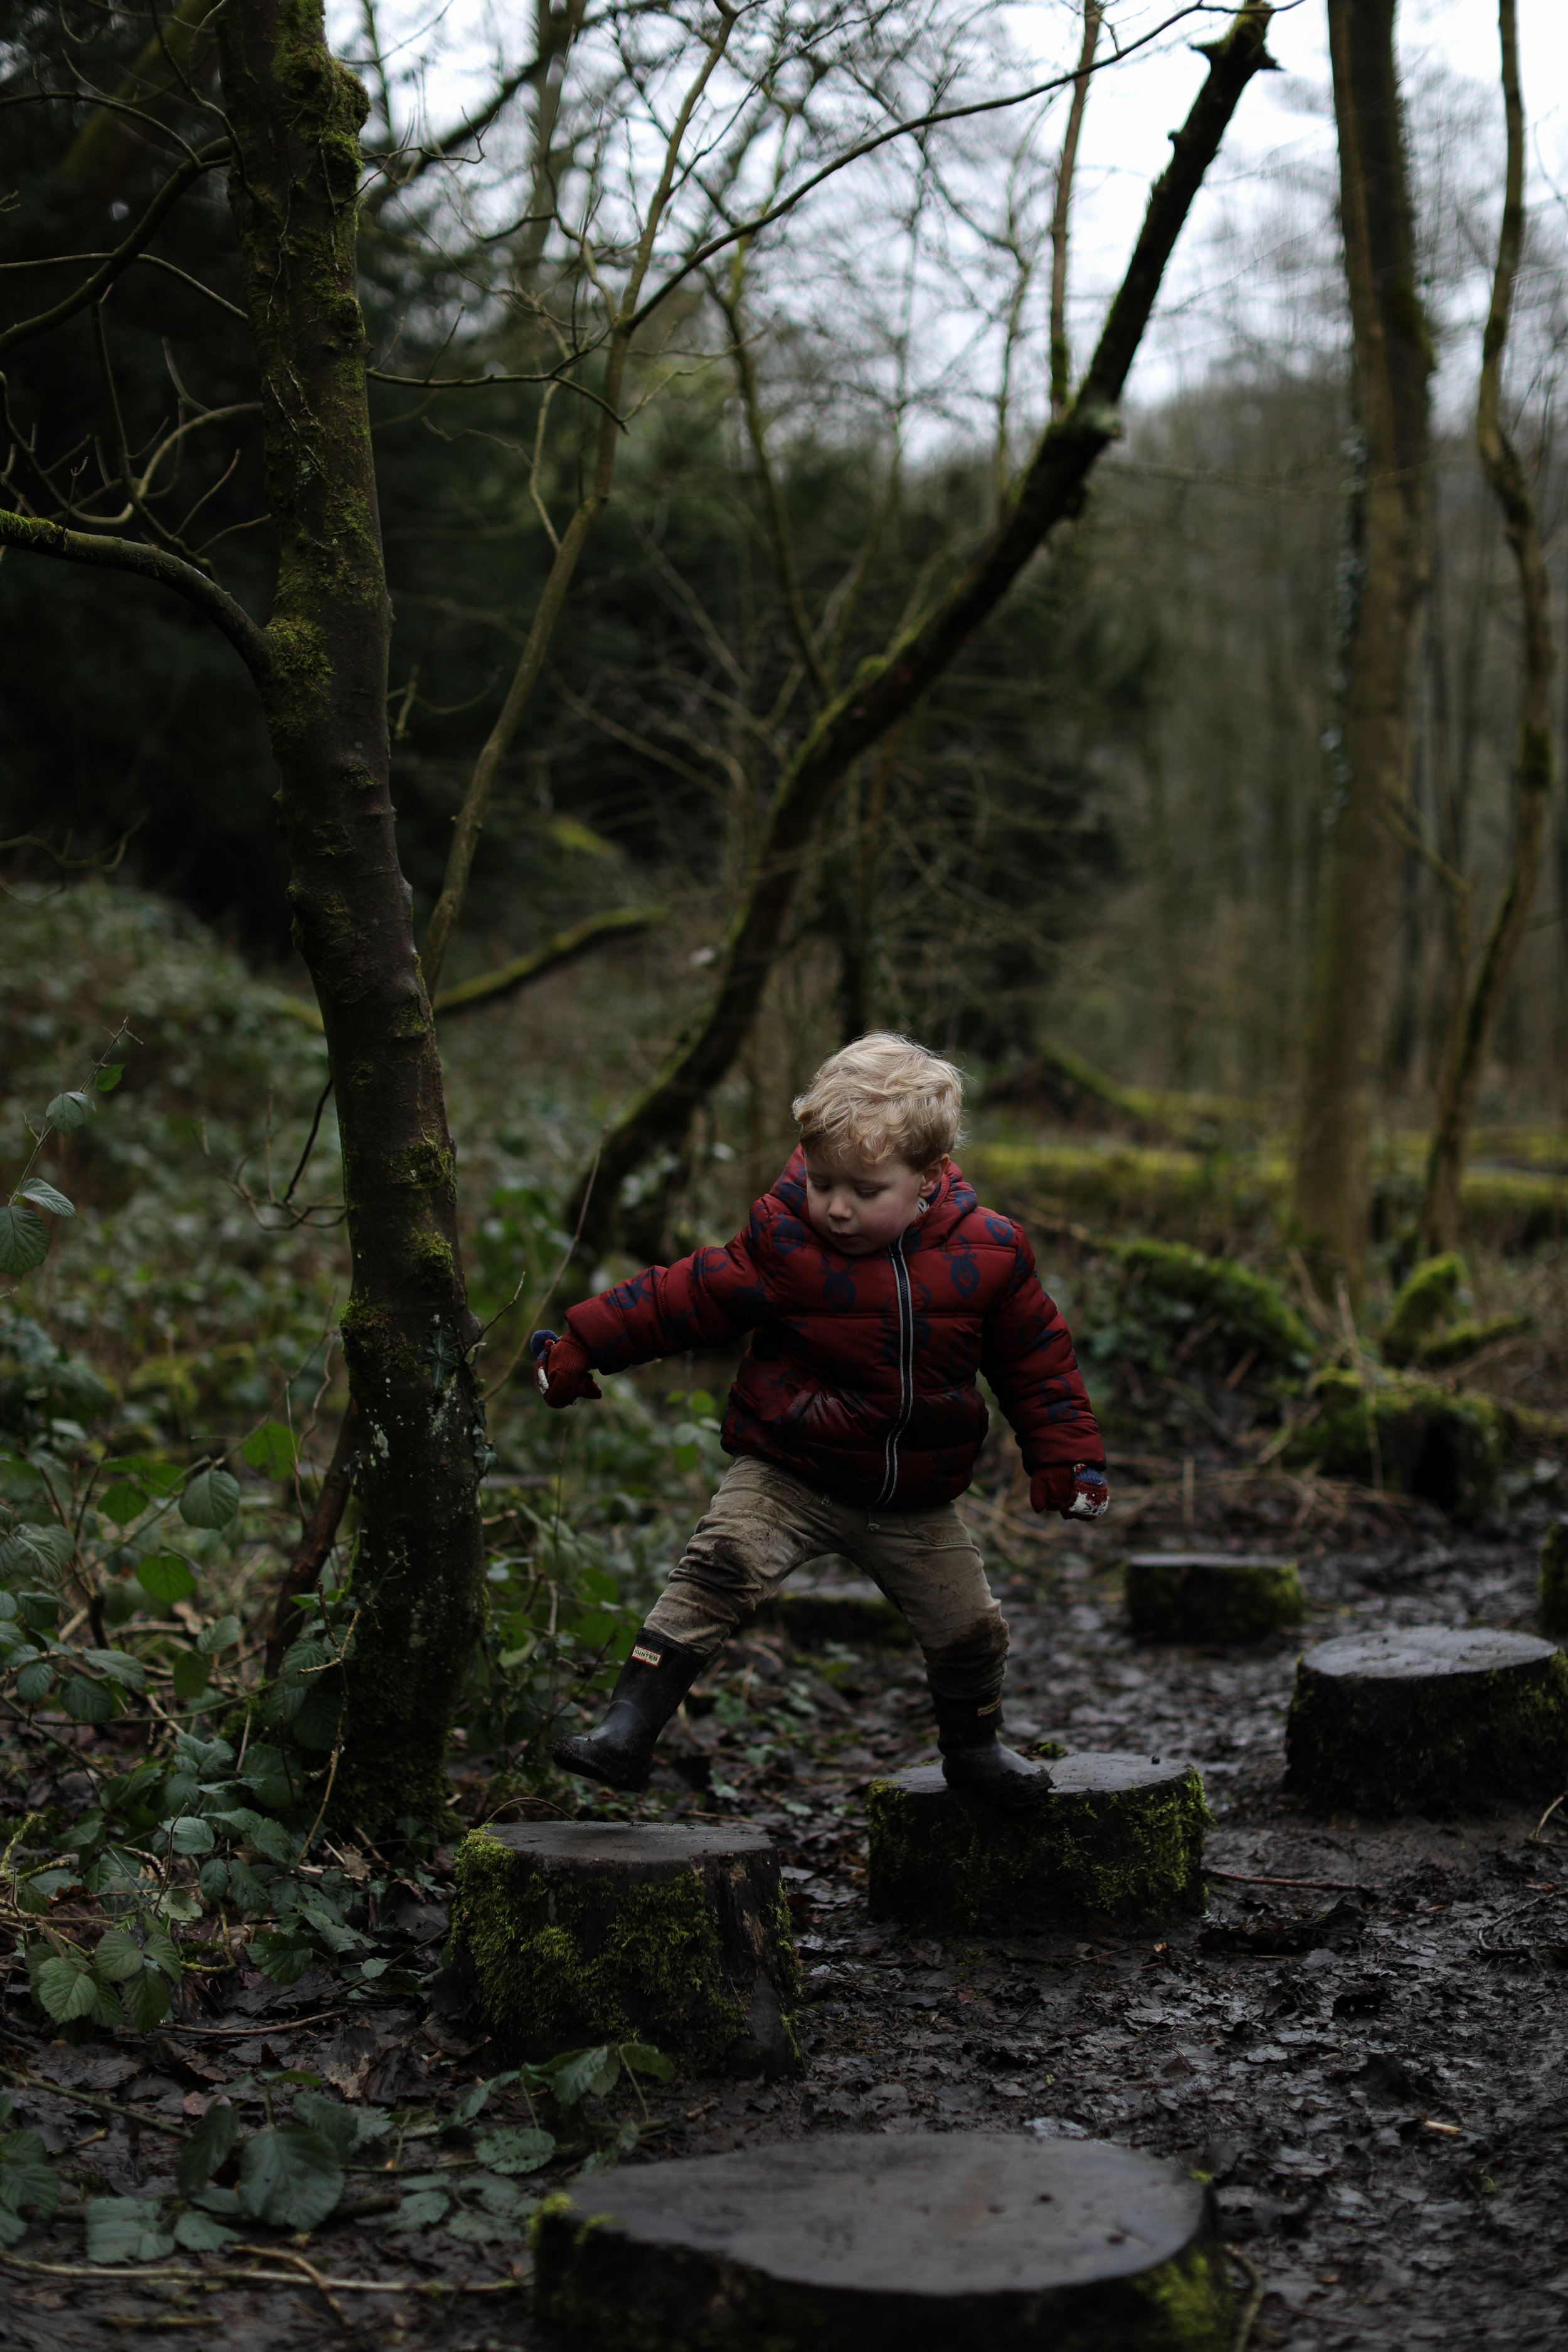 It might be muddy, but how much more exciting and fun is this than playing on a traditional park?